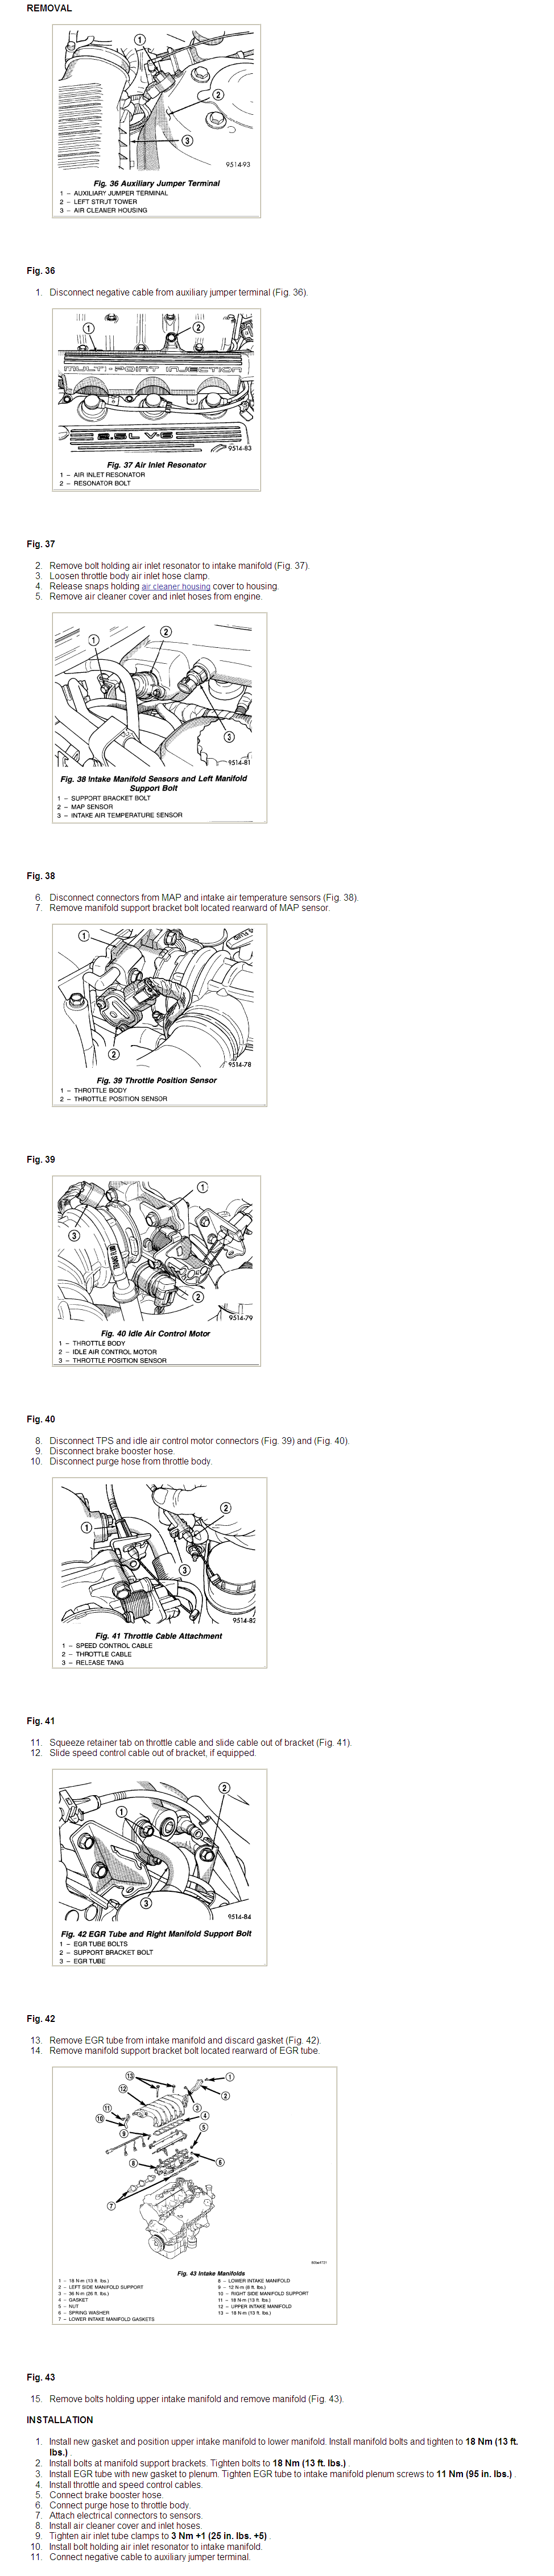 We Replaced The Distributer Cap Aon A 2000 Dodge Stratus Witha 25 1998 Ram 1500 Distributor Wiring Diagram Graphic